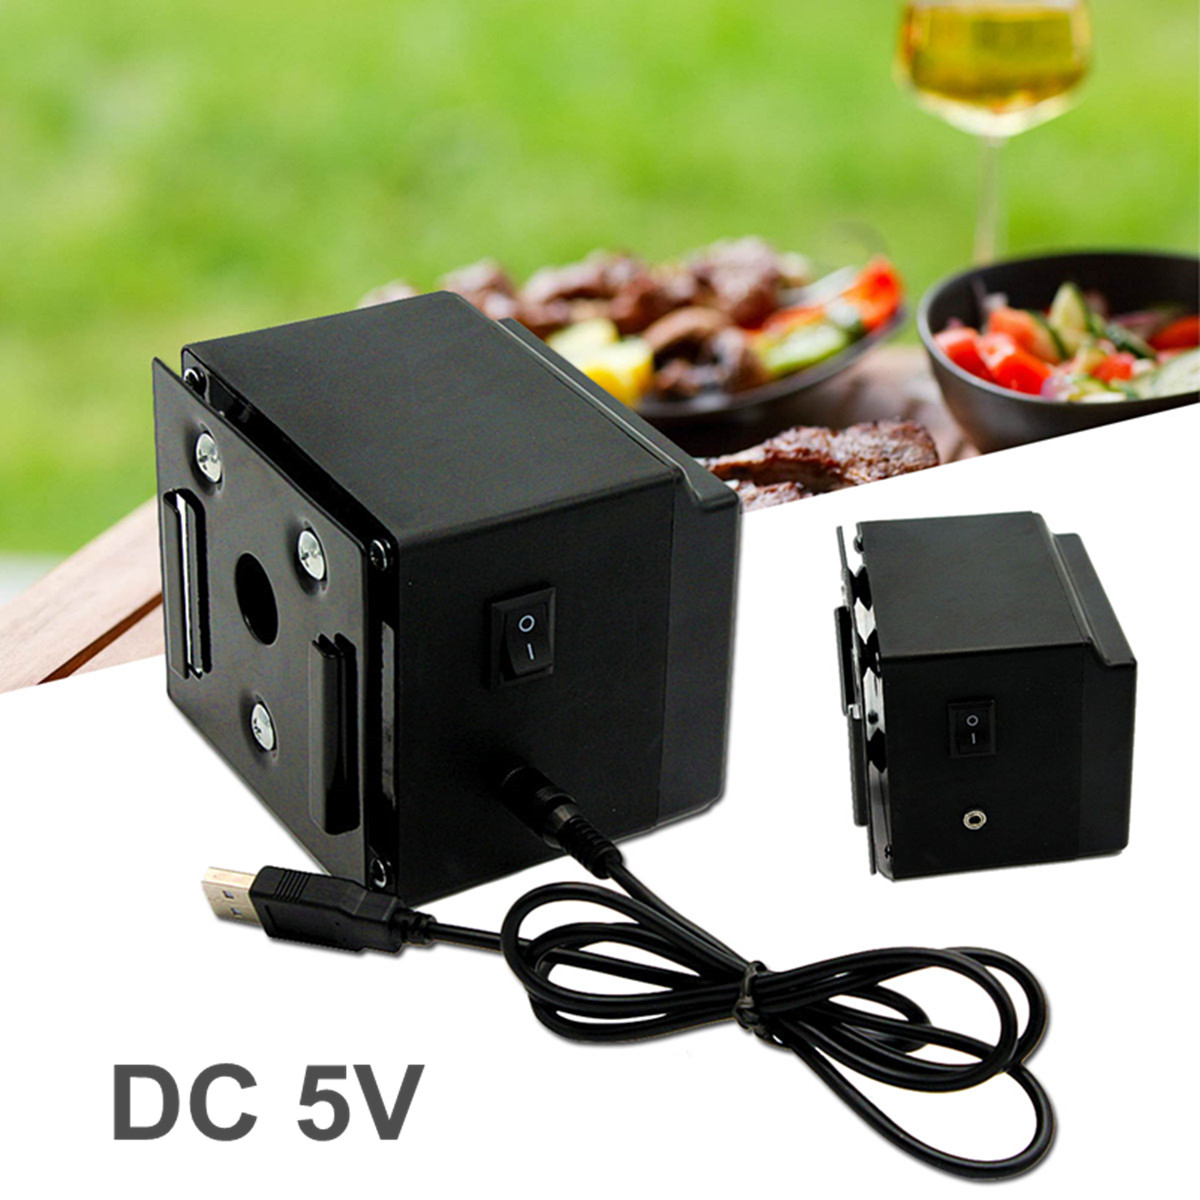 SODIAL Dc 5V Usb Bbq Spit Roast Rotisserie Motor Outdoor Camping Barbecue Accessories Kitchen Appliance Parts Rotisserie Parts